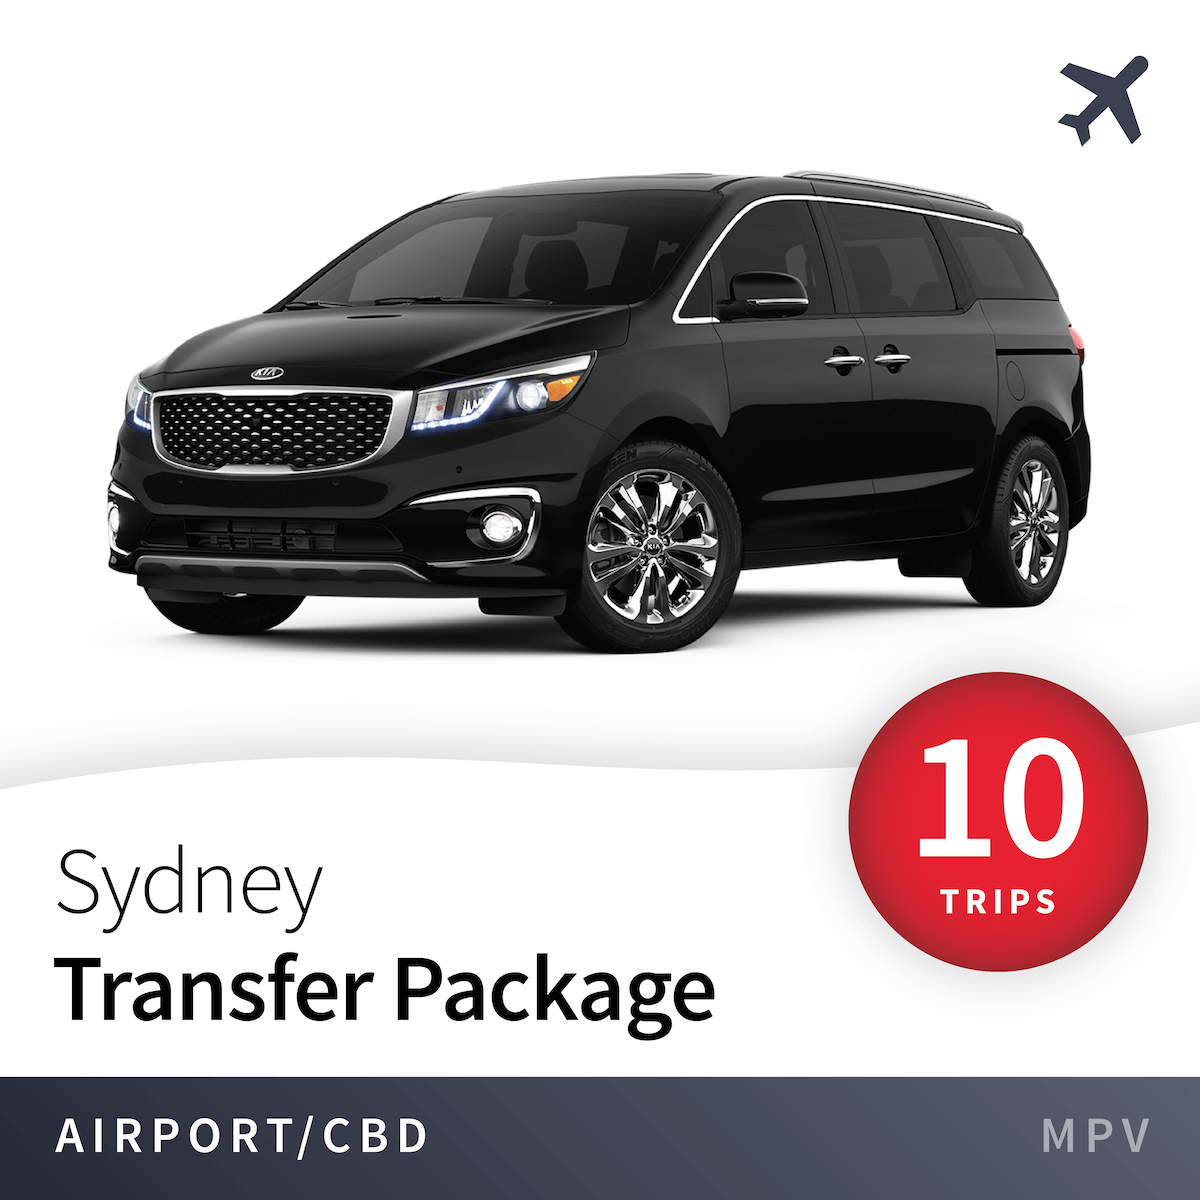 Sydney Airport Transfer Package - MPV (10 Trips) 1